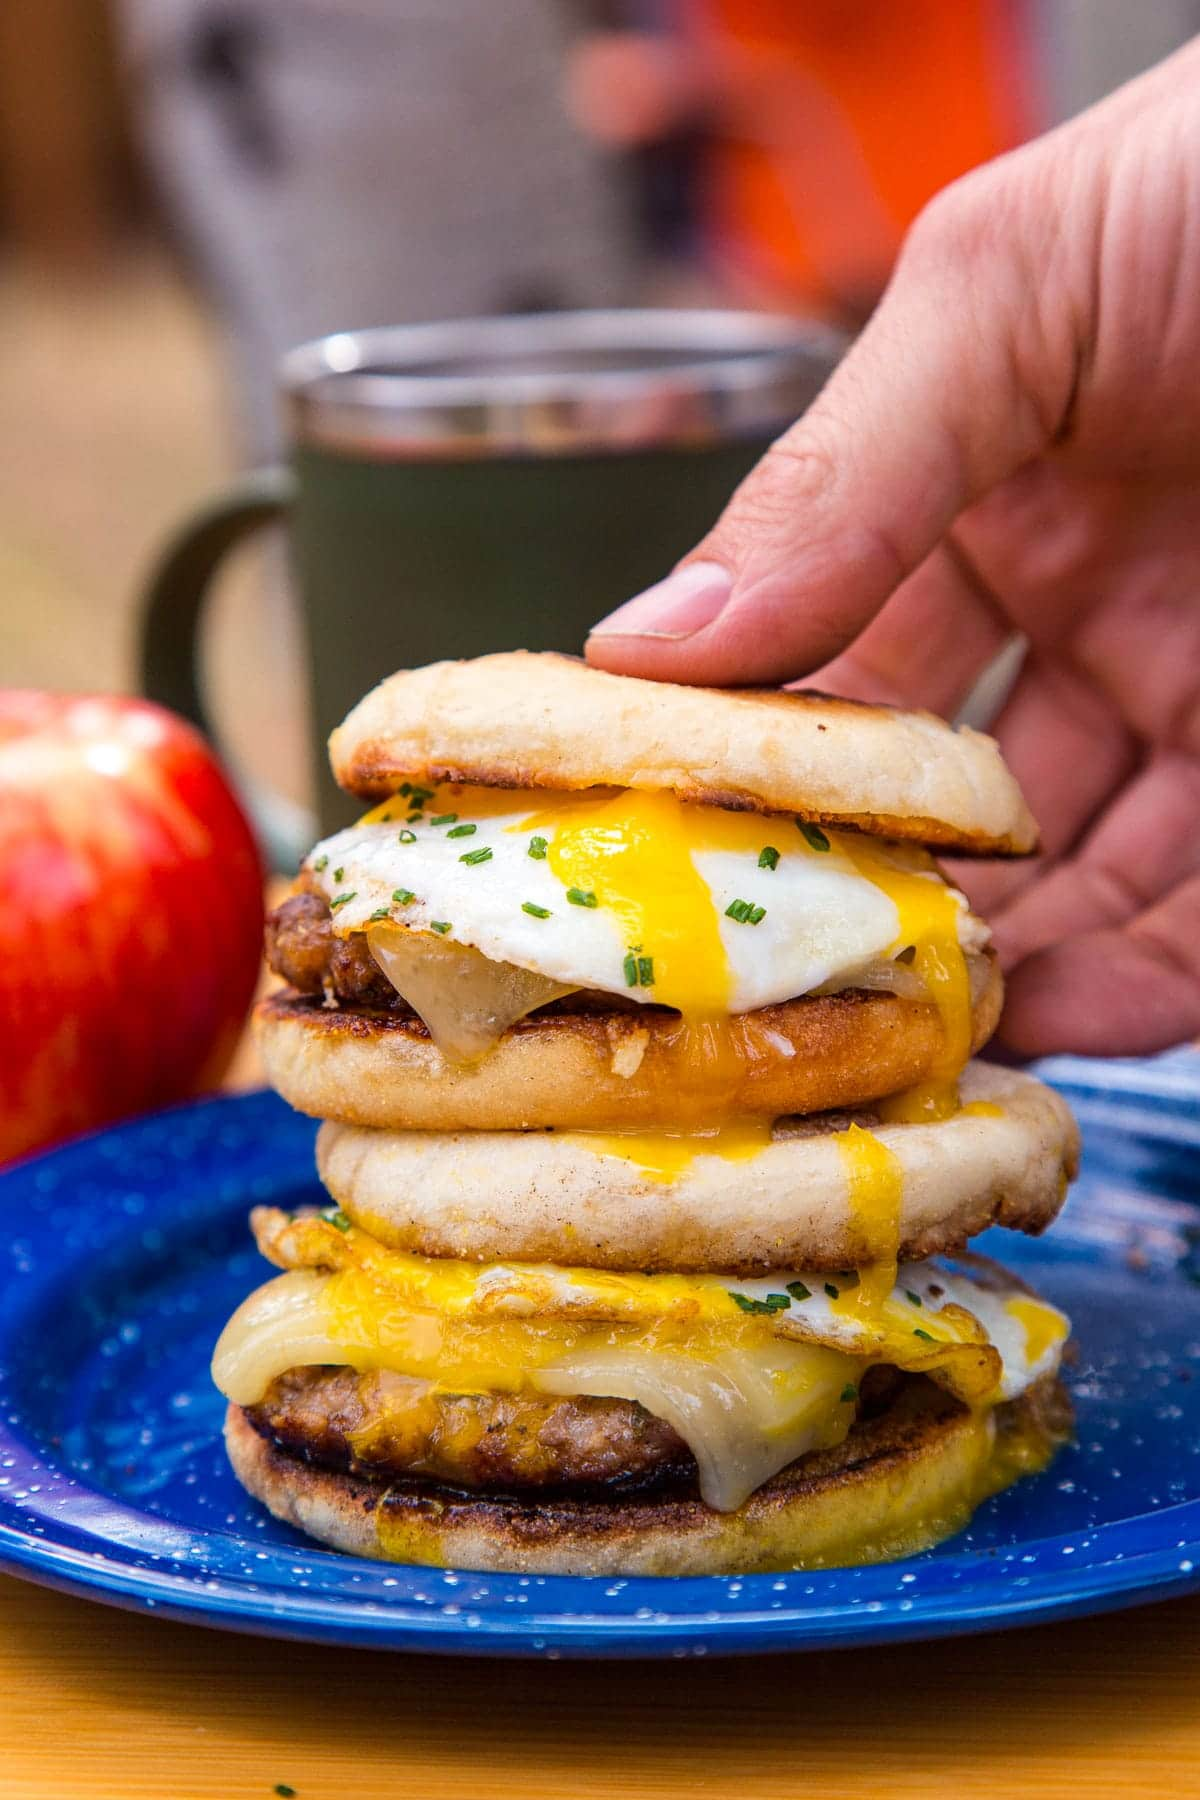 Two stacked breakfast sandwiches on a blue plate. A hand is picking one up.